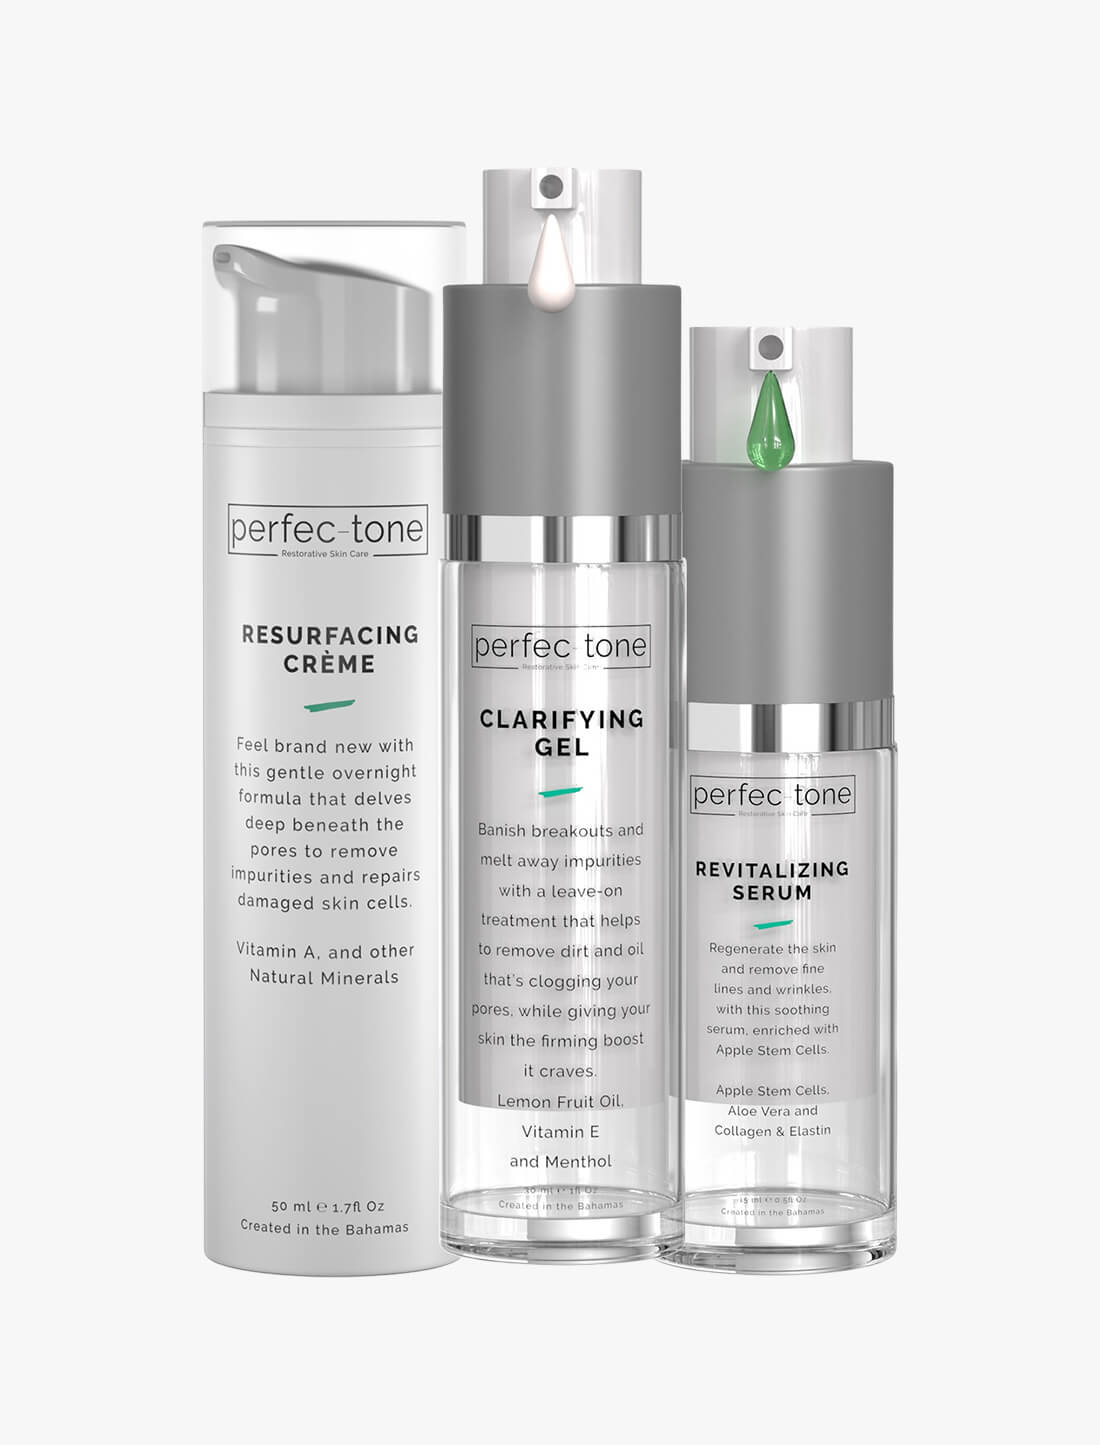 Clear & Spotless Set - Clarifying Gel, Resurfacing Crème, & Revitalizing Serum